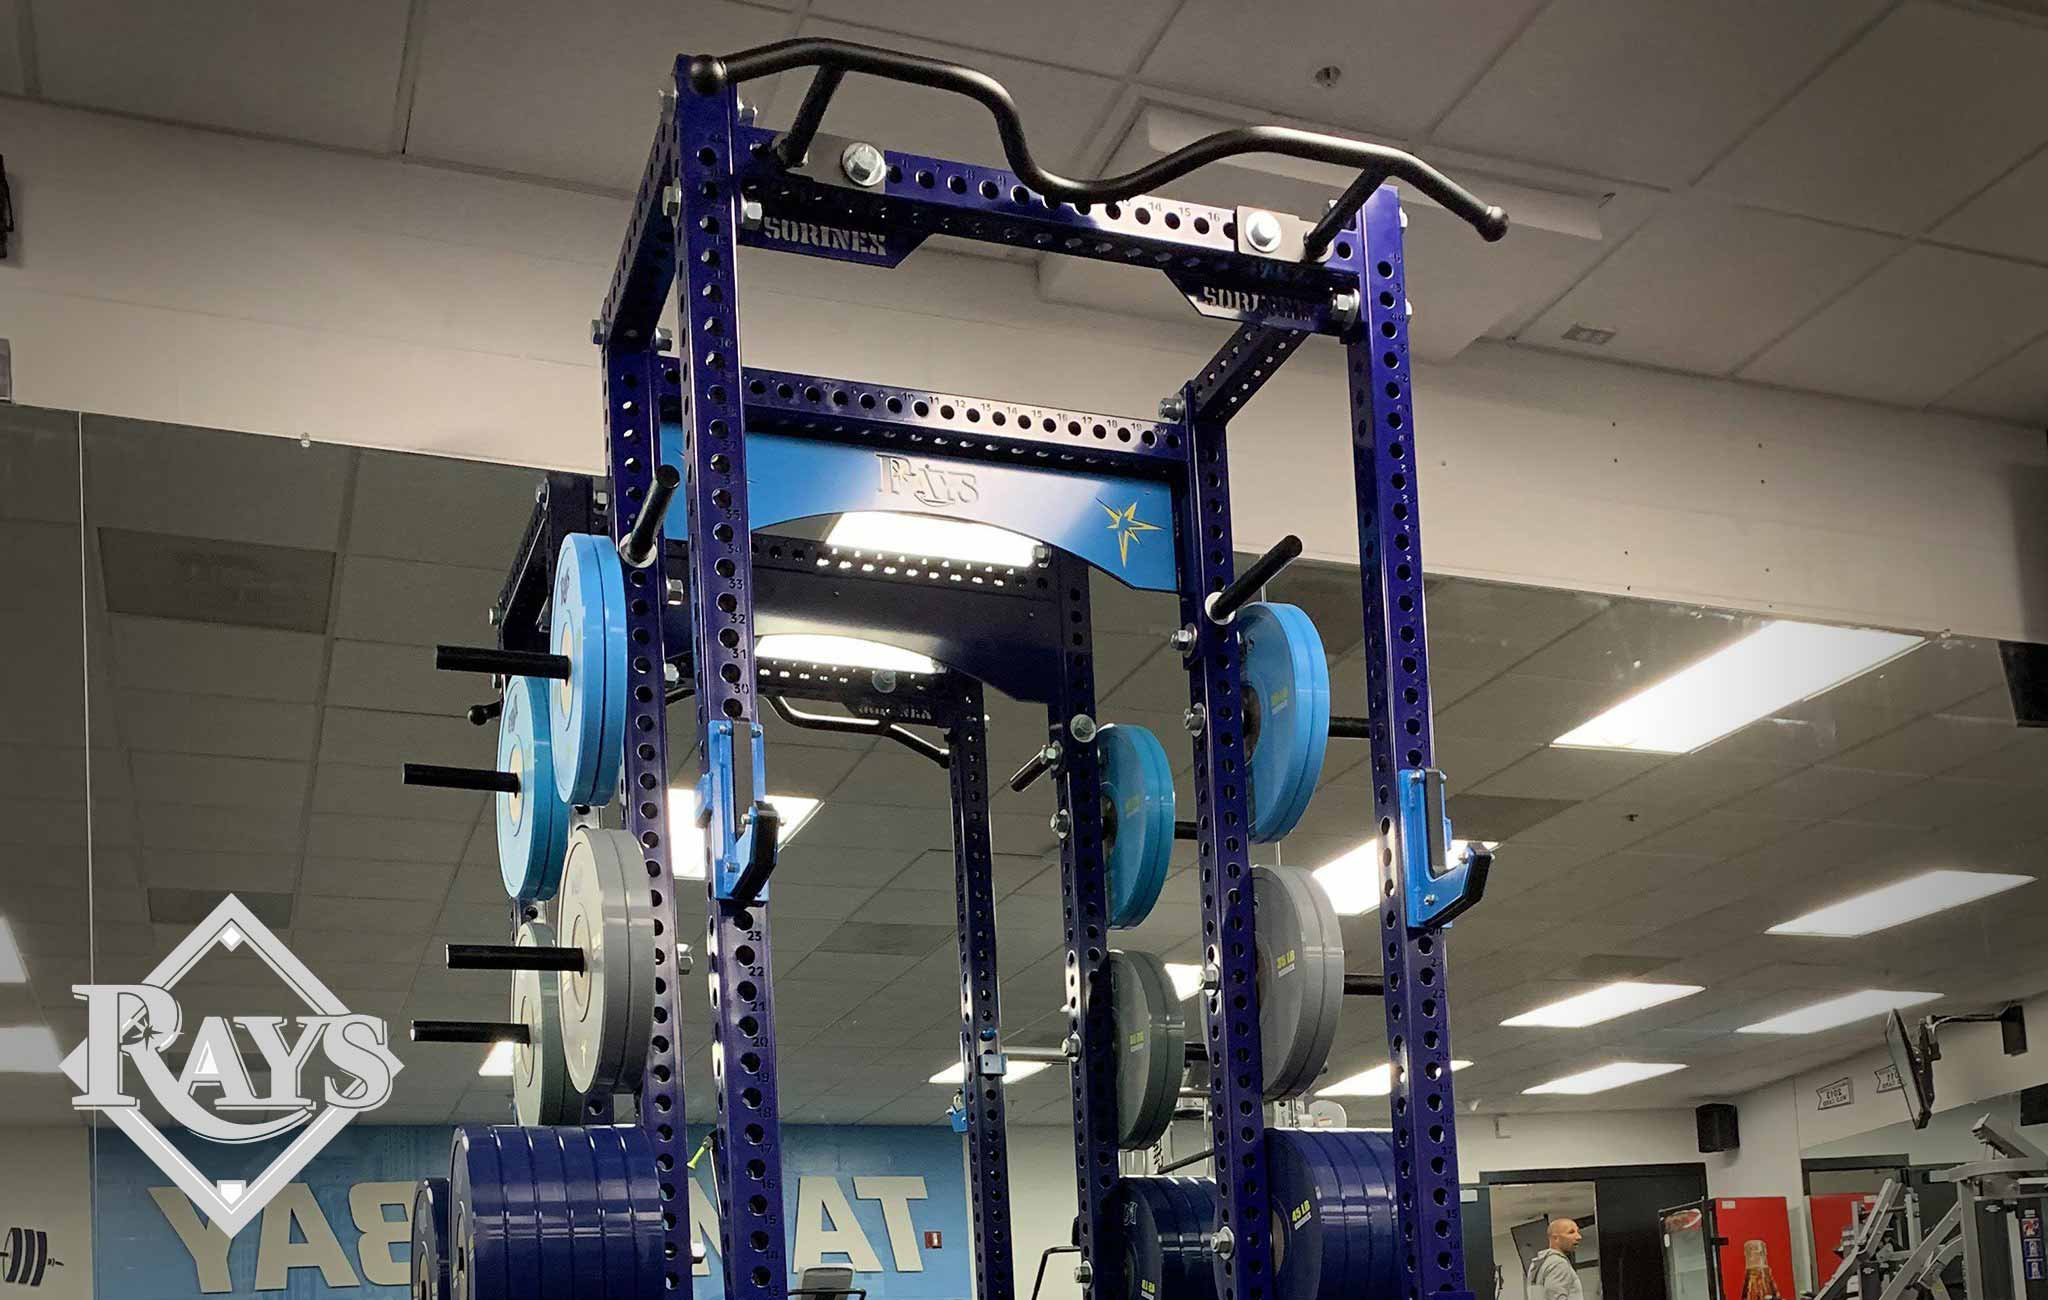 tampa bay rays Sorinex strength and conditioning facility